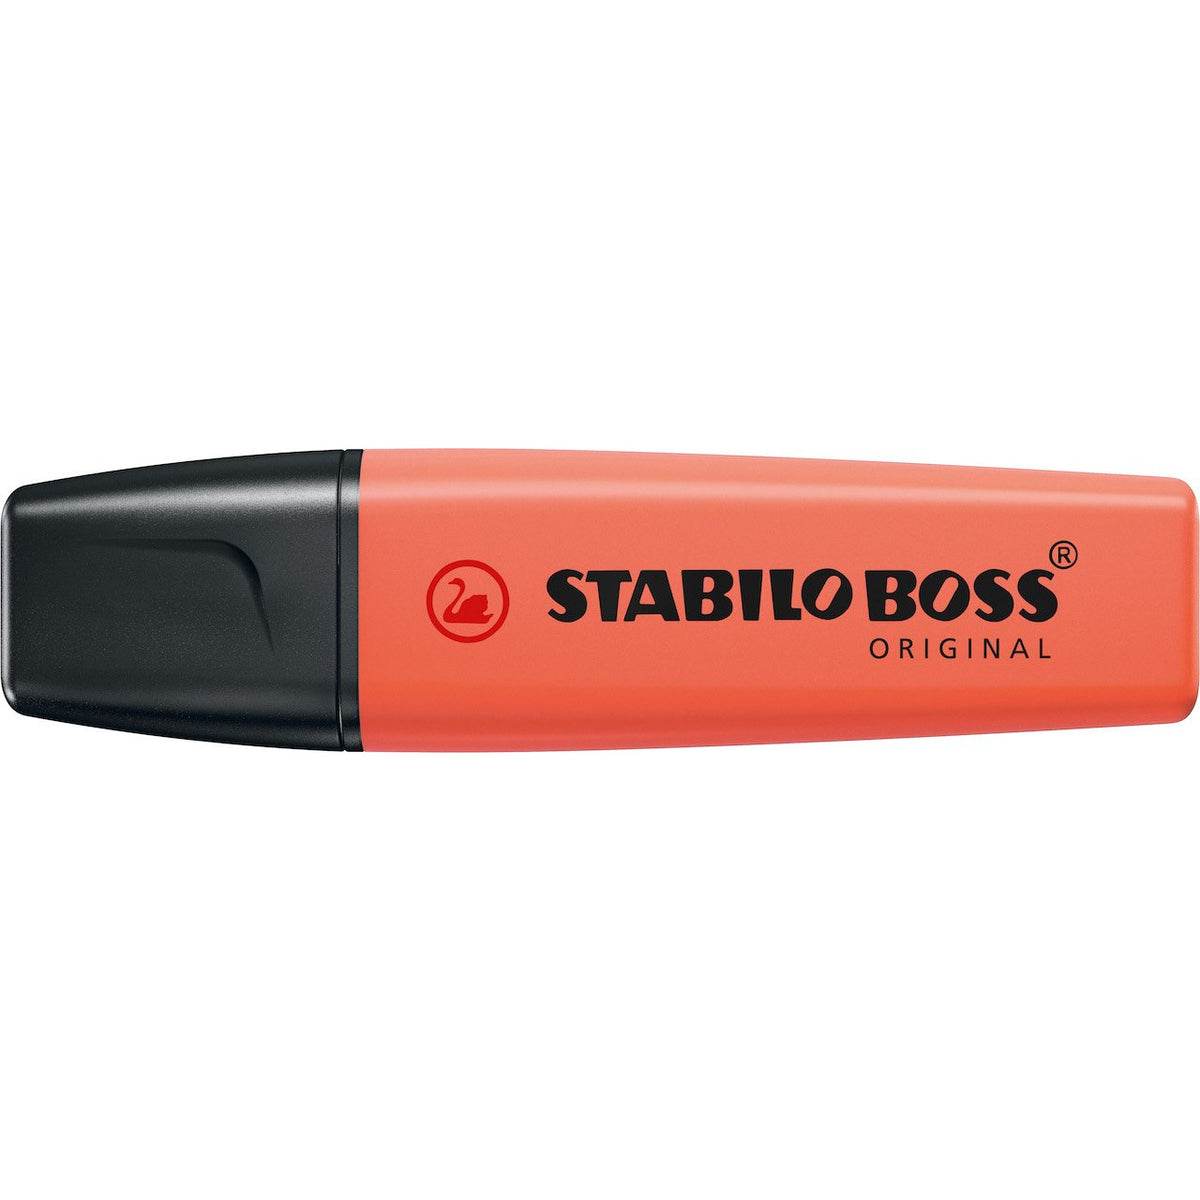 Stabilo Boss pastell mellow coral red